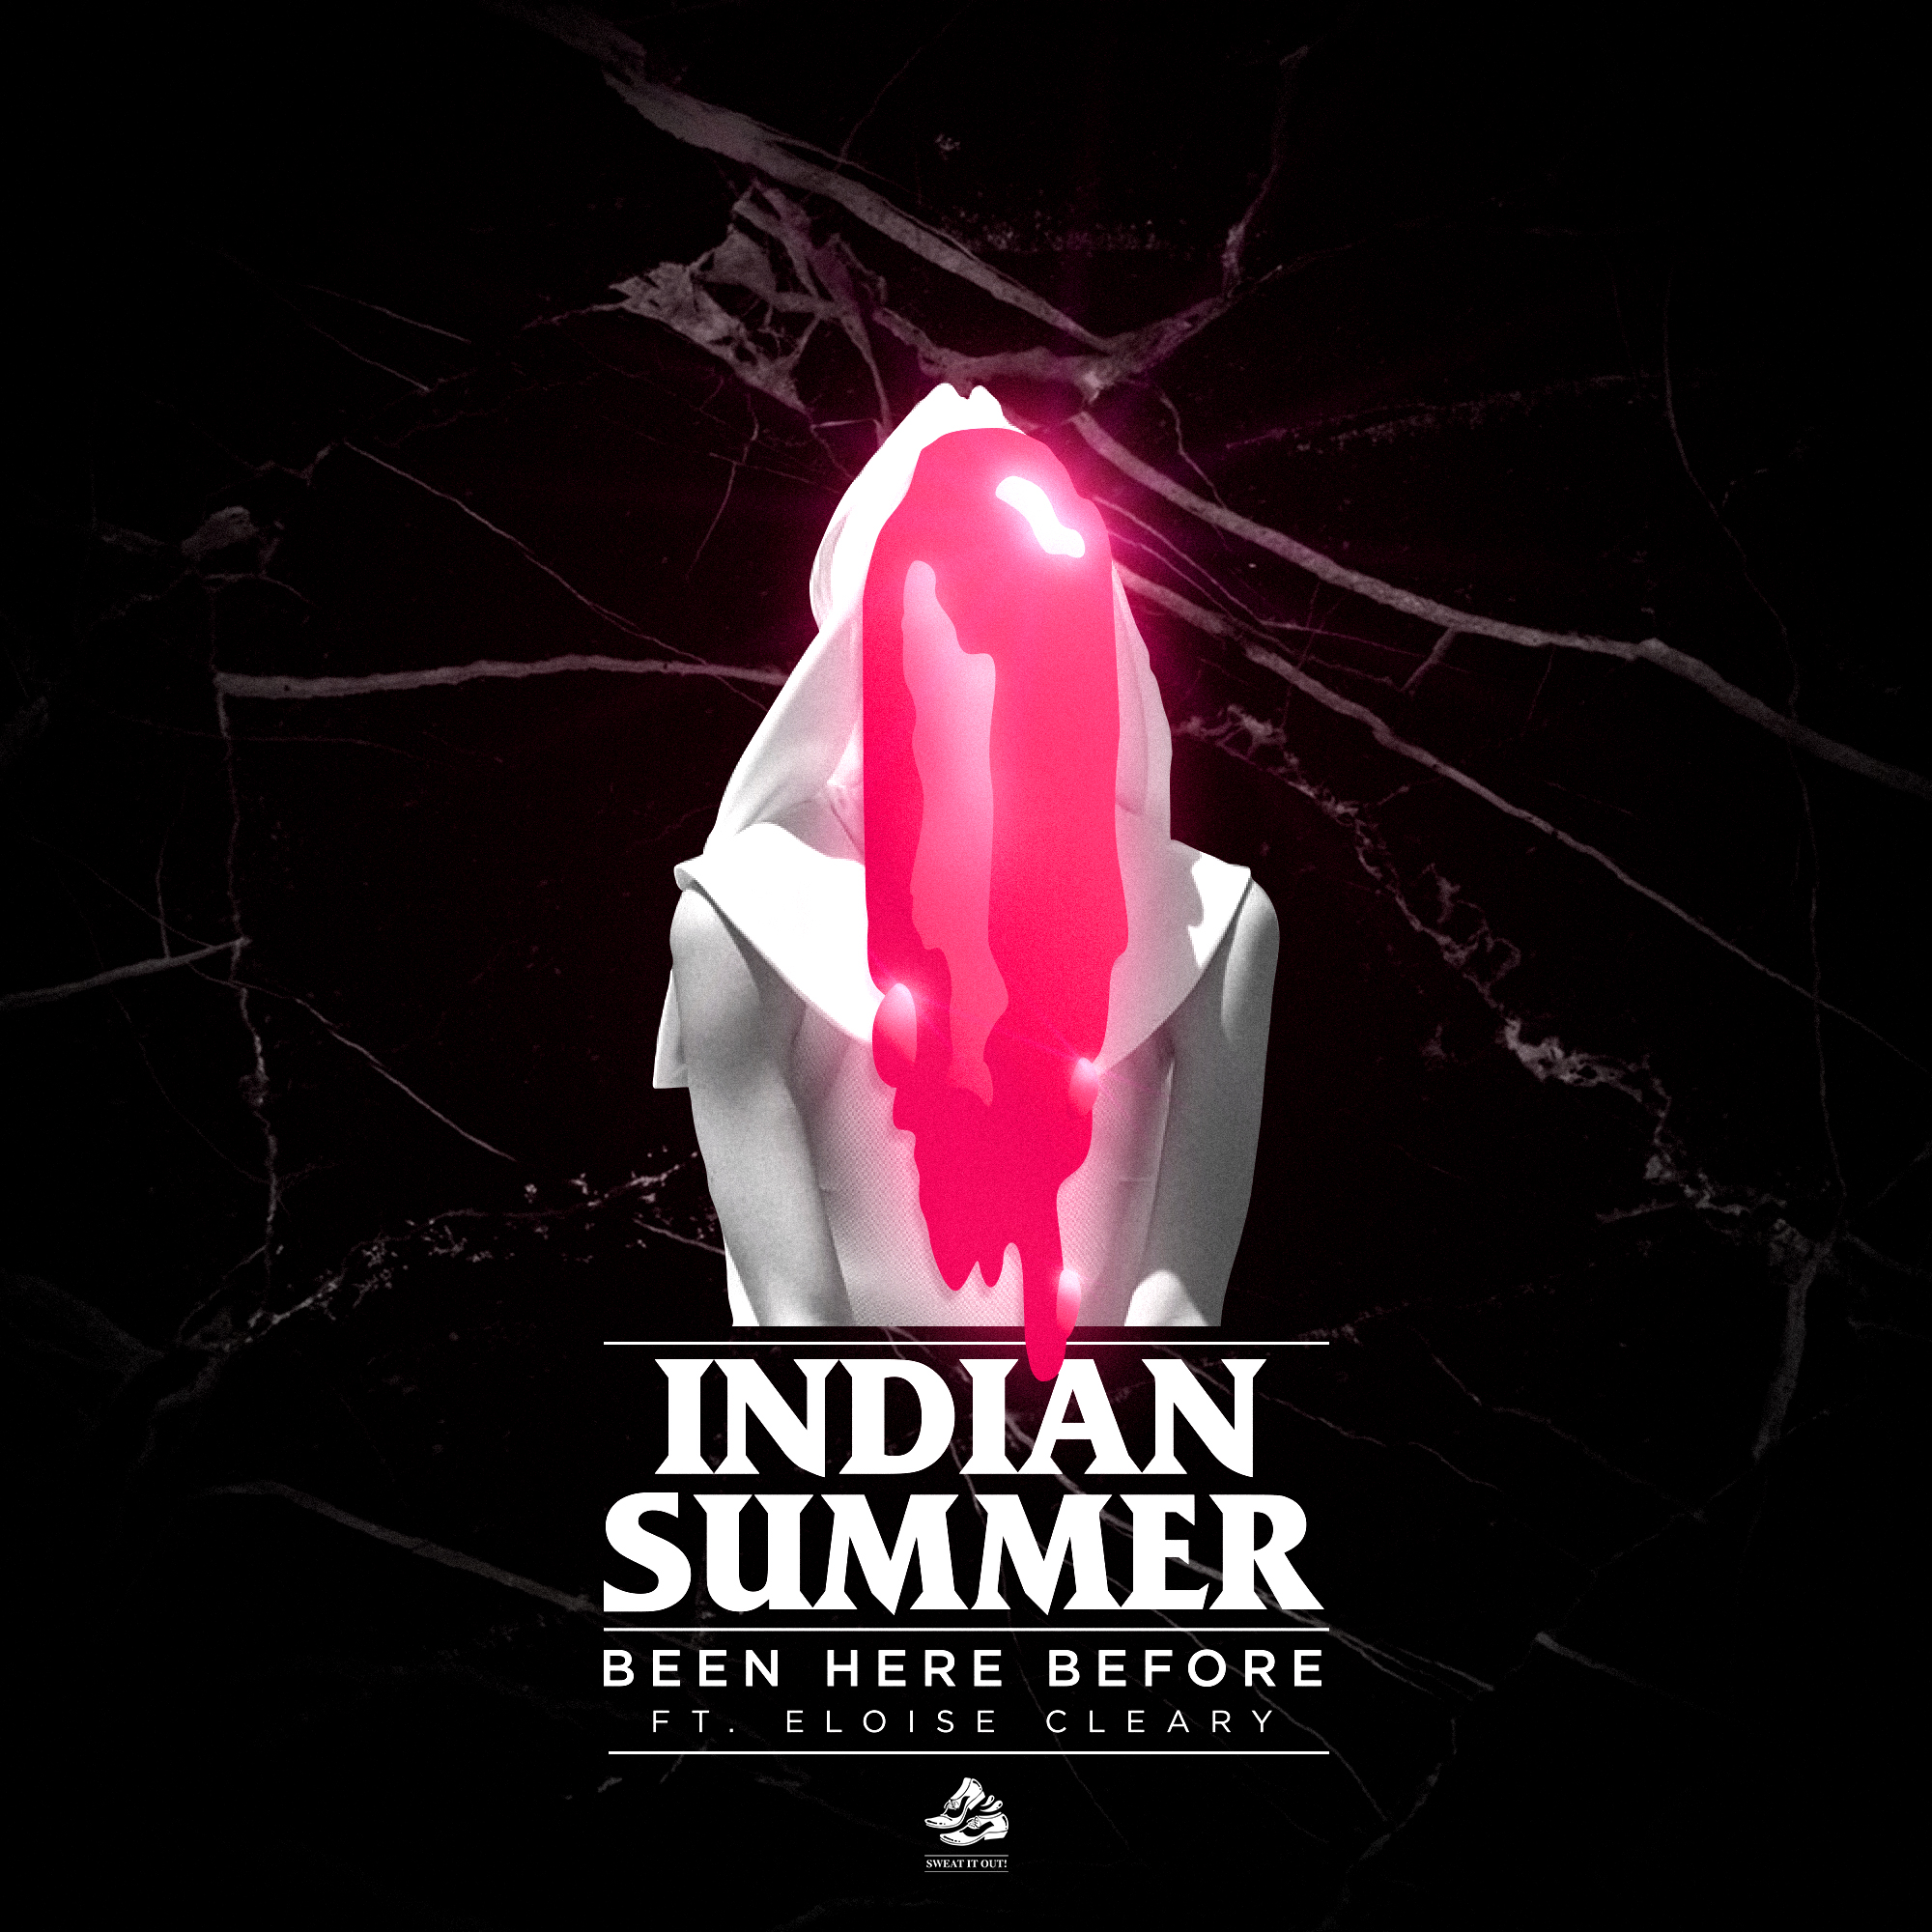 Been_Here_Before_Indian_Summer_Cover_2000x2000.jpg